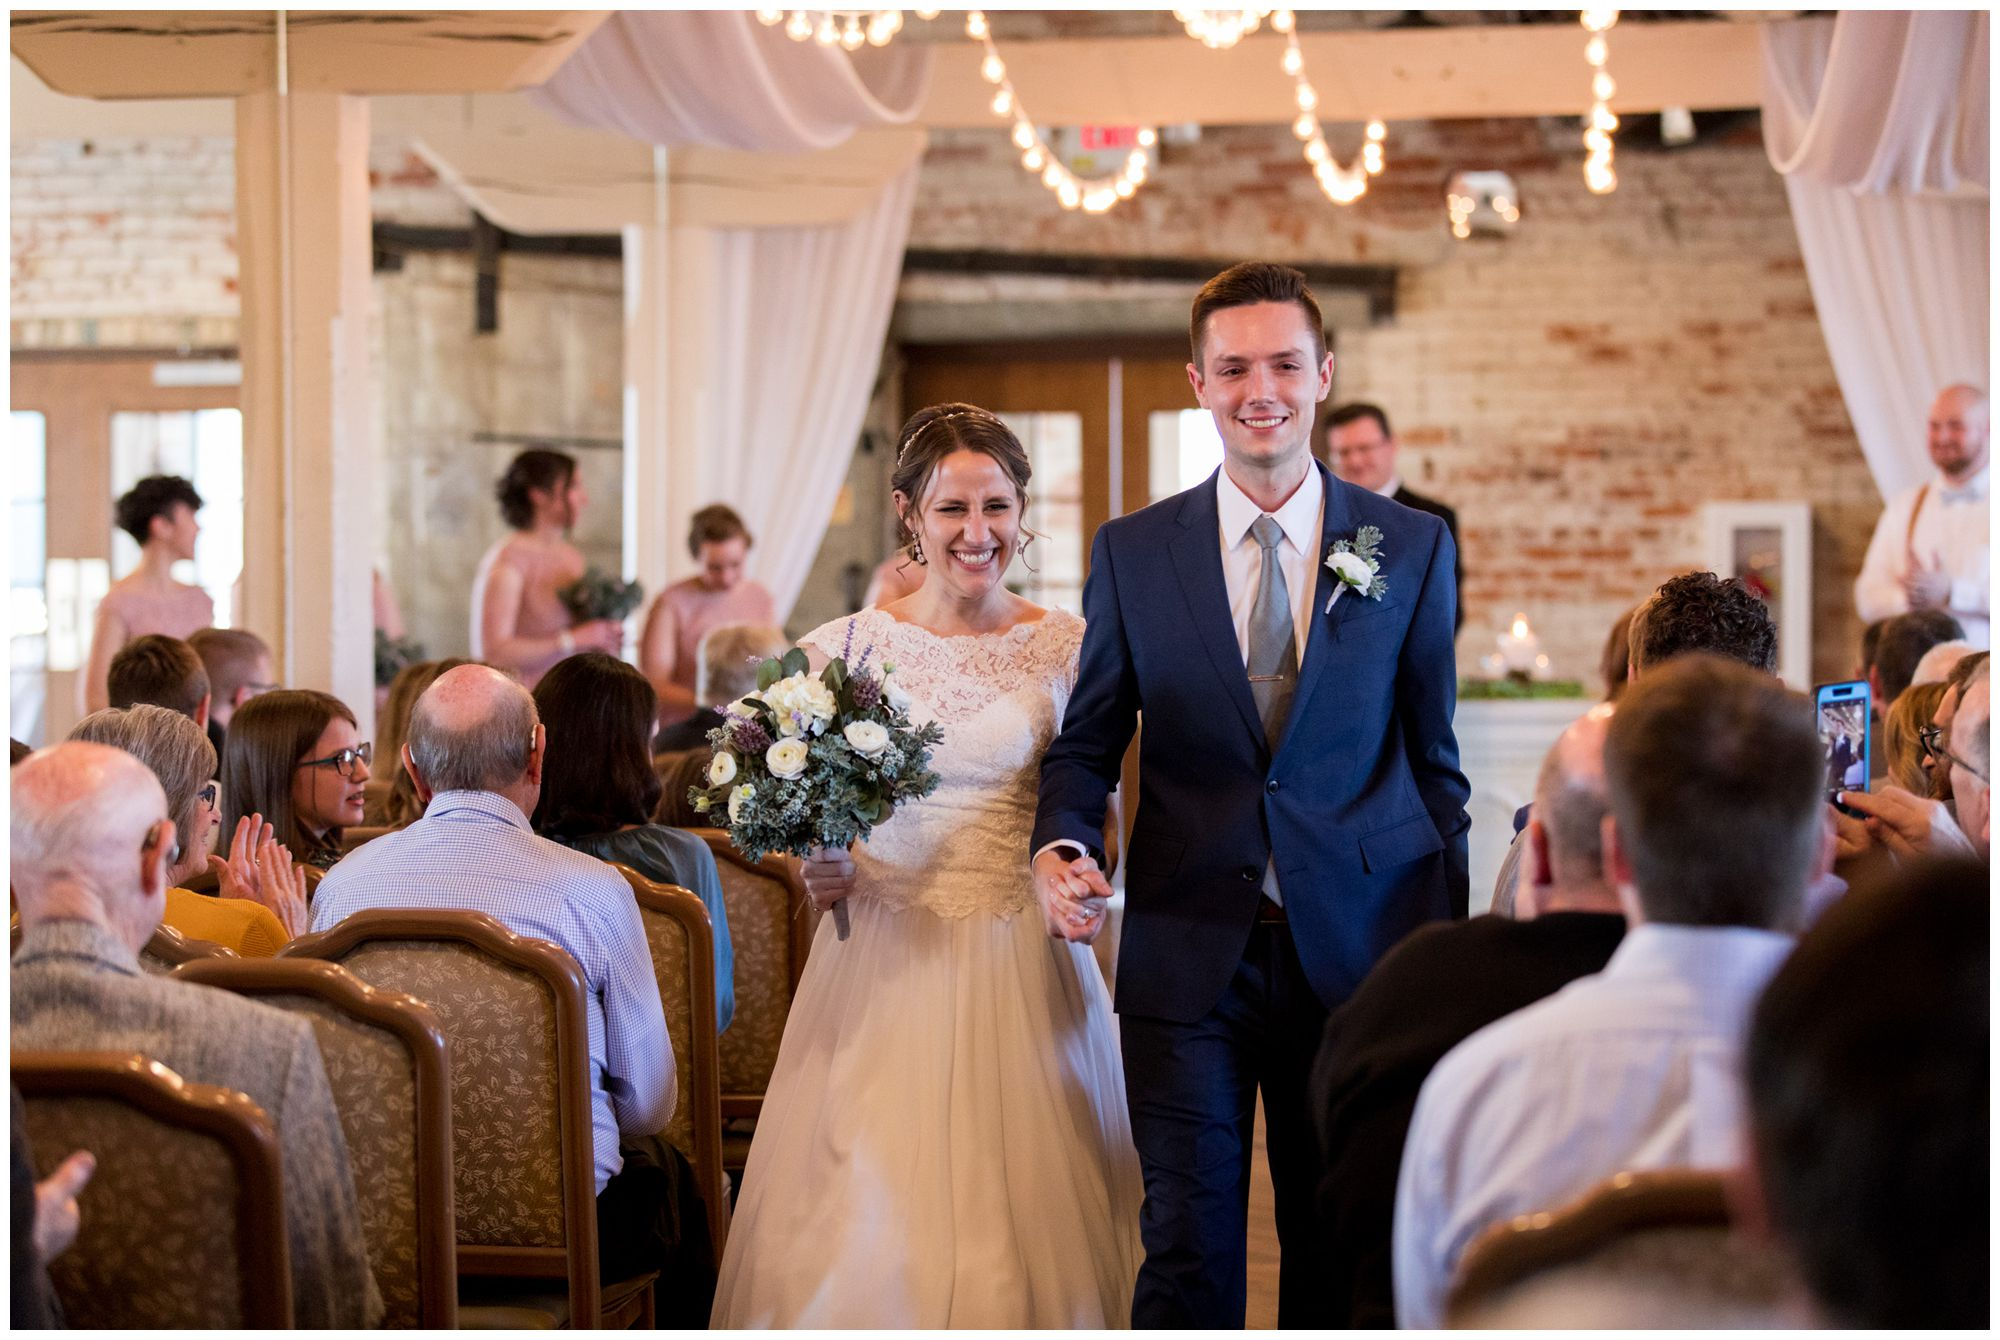 bride and groom recessional at Bread & Chocolate wedding ceremony